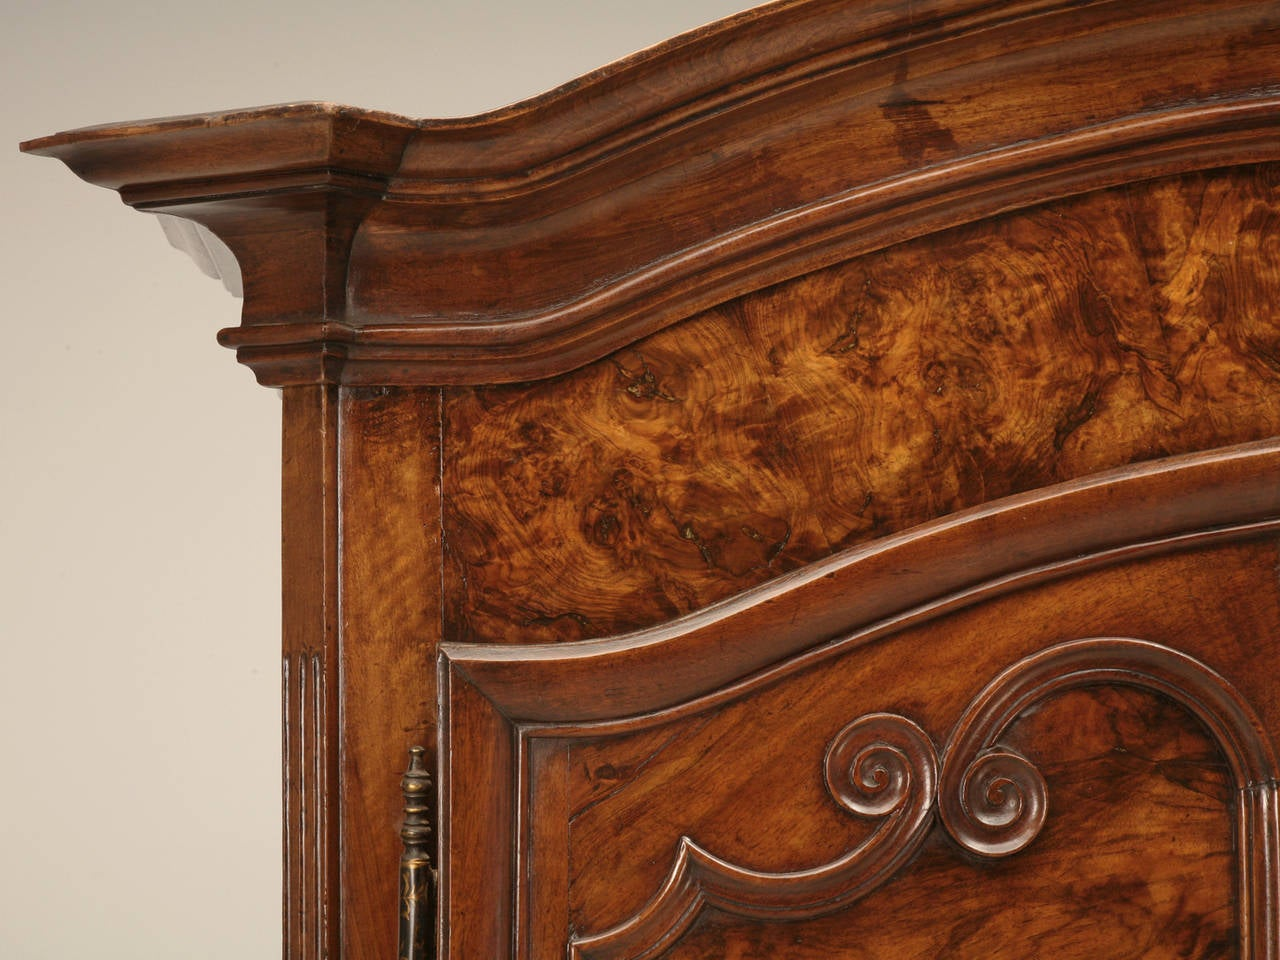 Hand-Crafted Armoire, French Burl Walnut in the Style of Louis XV Painted and Gilded Hinges